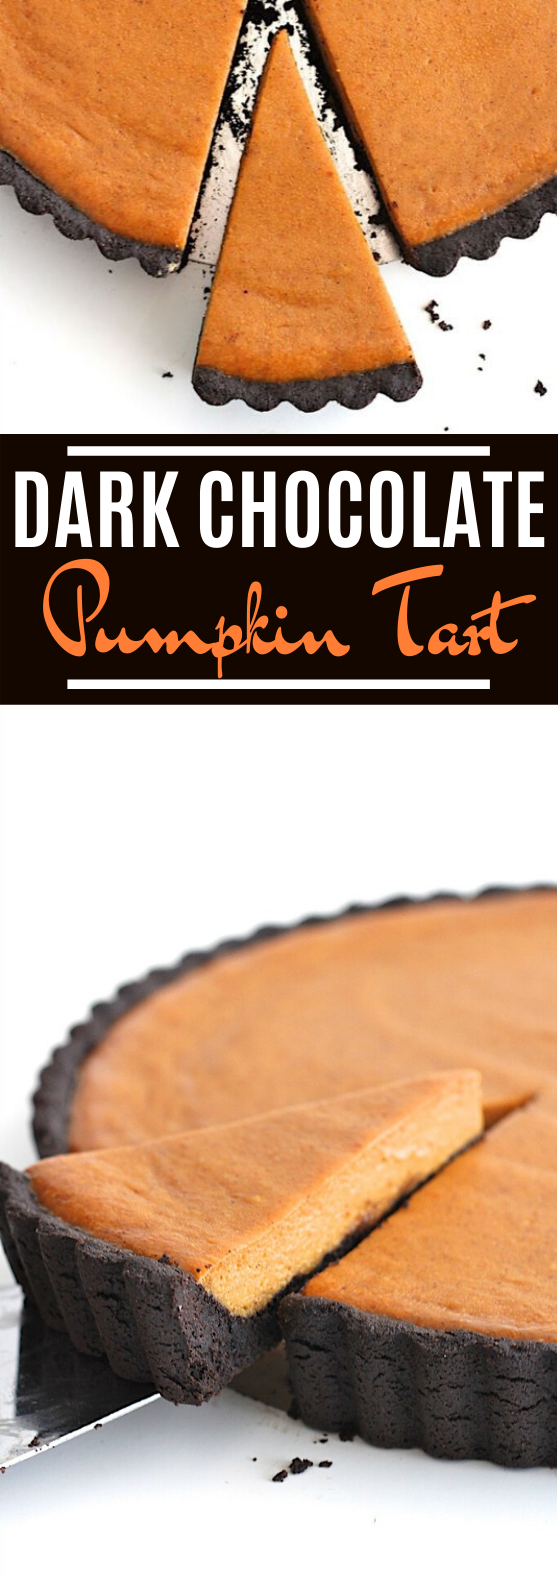 Dark Chocolate Pumpkin Tart #chocolate #desserts #pumpkin #pie #thanksgiving